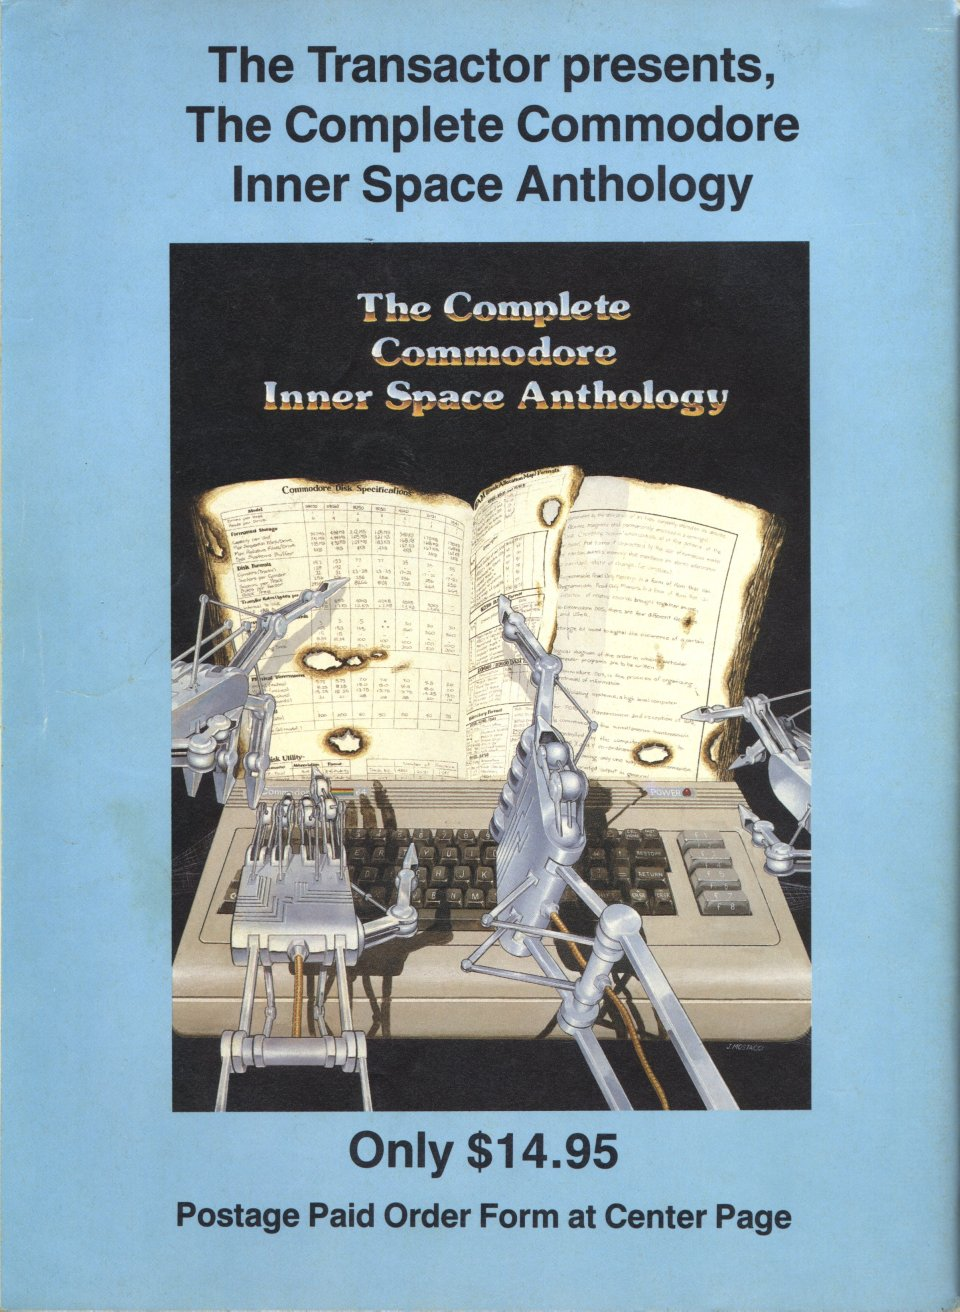 [Advertisement: The Complete Commodore Inner Space Anthology, Only $14.95]